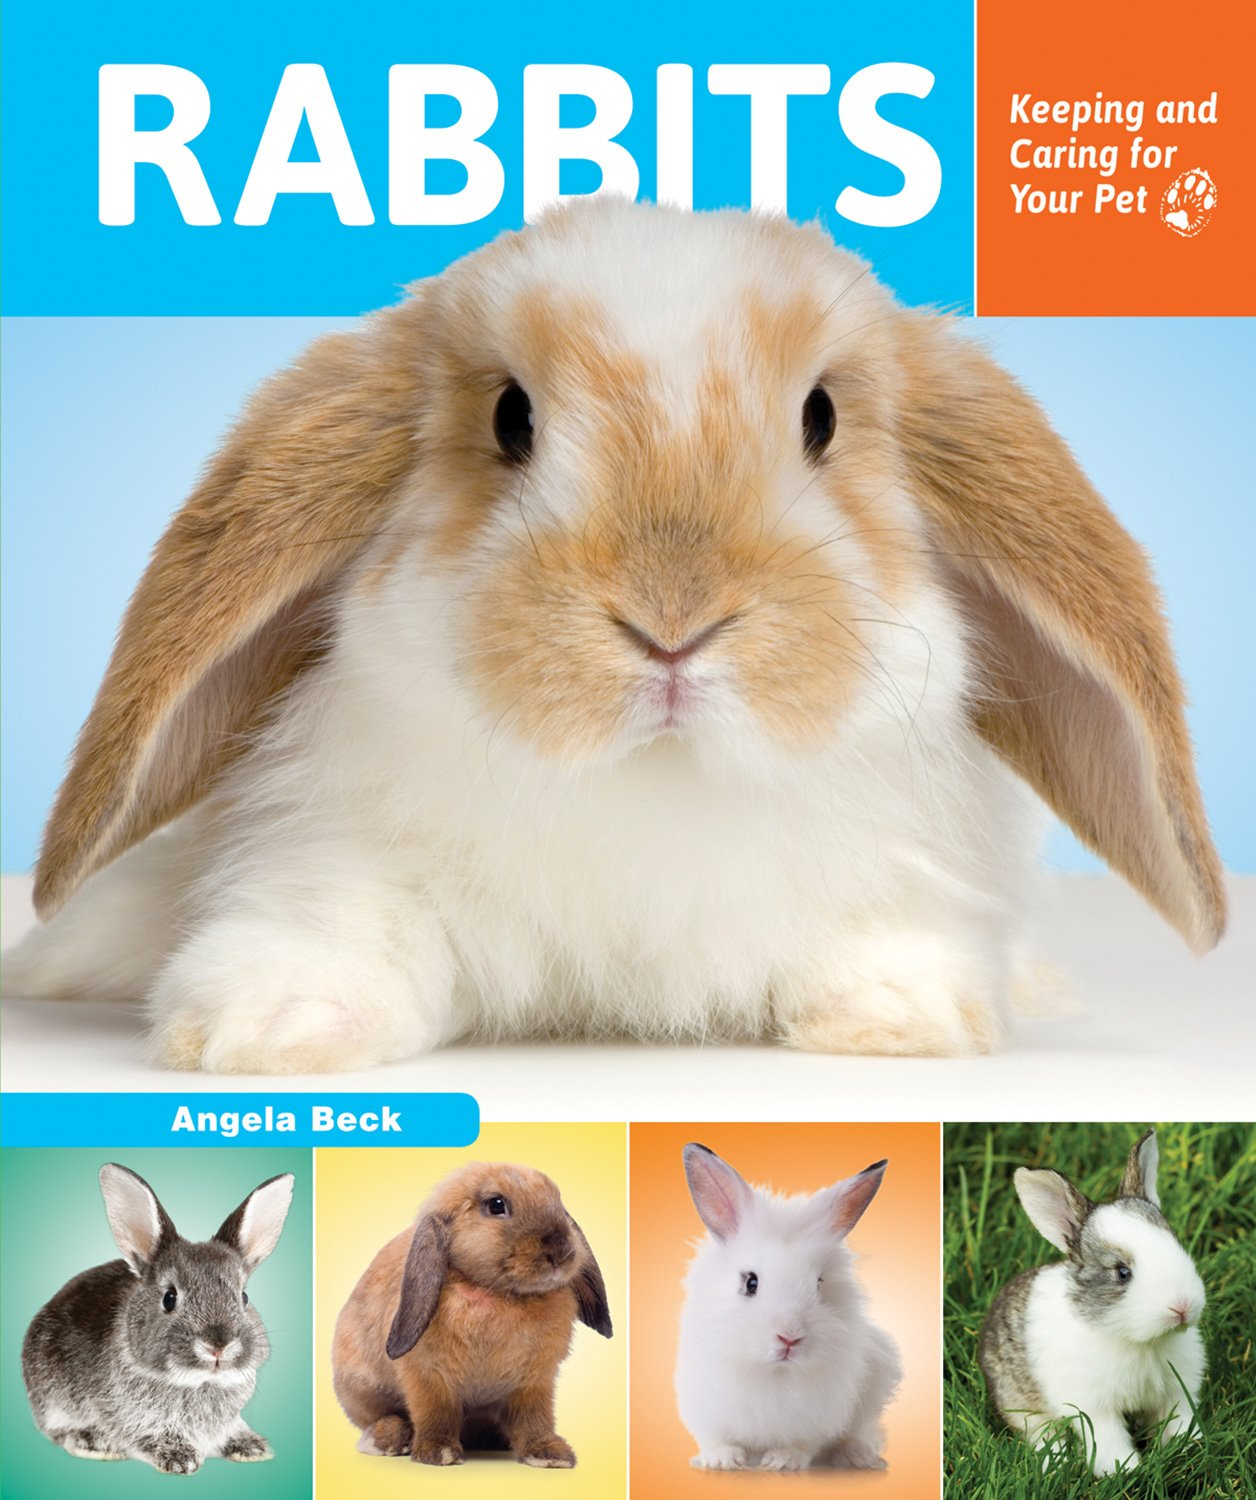 Rabbits: Keeping and Caring for Your Pet